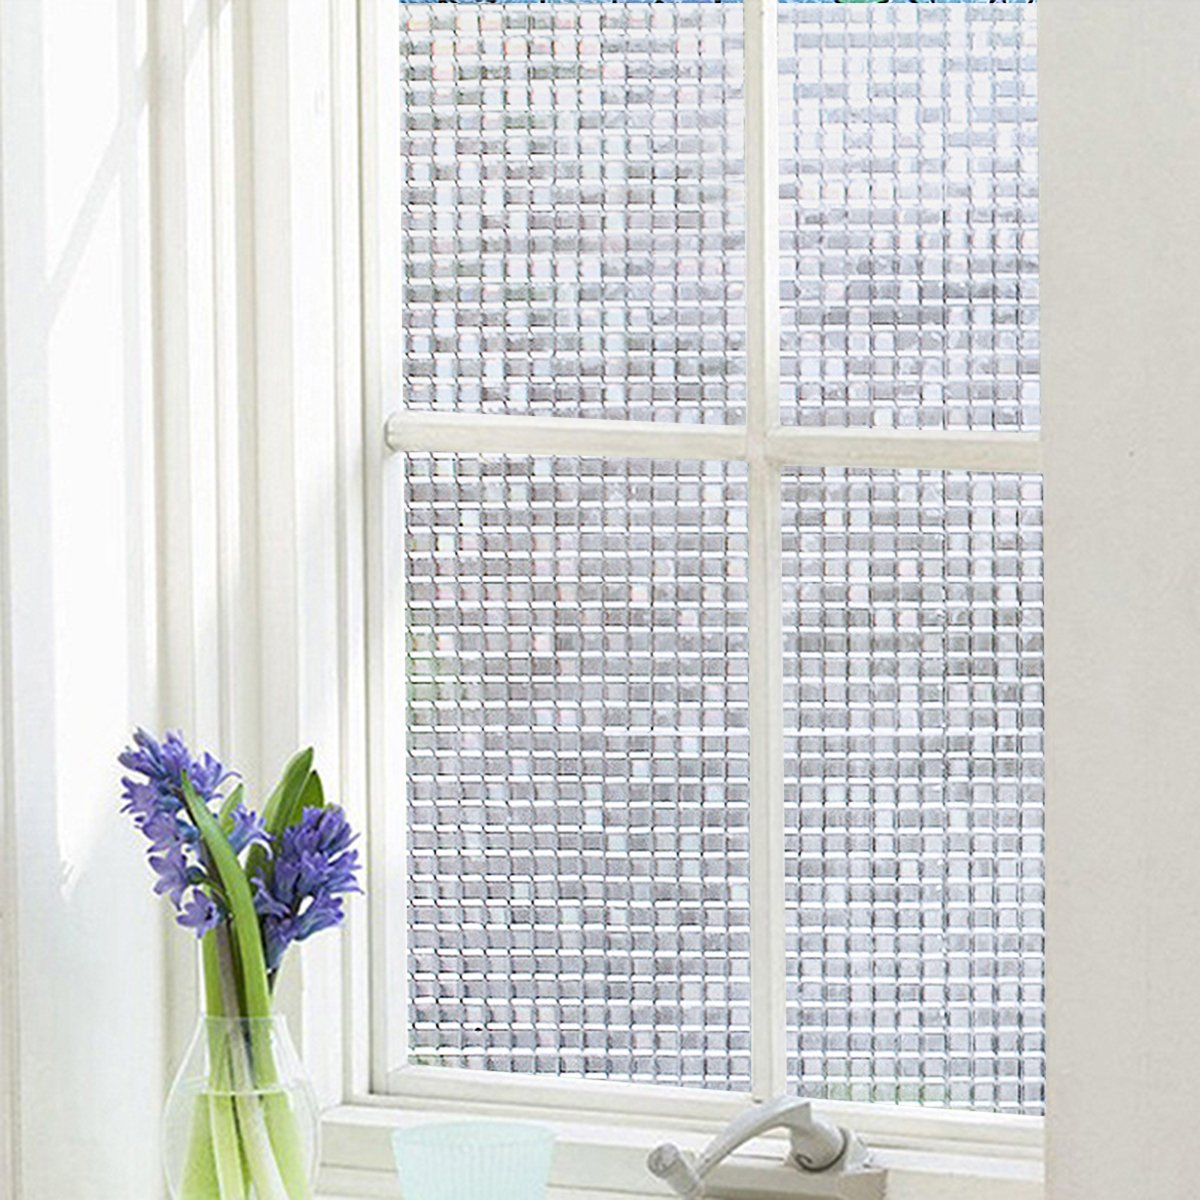 3D Frosted Glass Window Sticker Privacy Vinyl Window Blinds Decorative Opaque Static Cling Anti-UV 17.7x78.7 EASEHOME Self Adhesive Window Film 45x200cm Mosaic Pattern